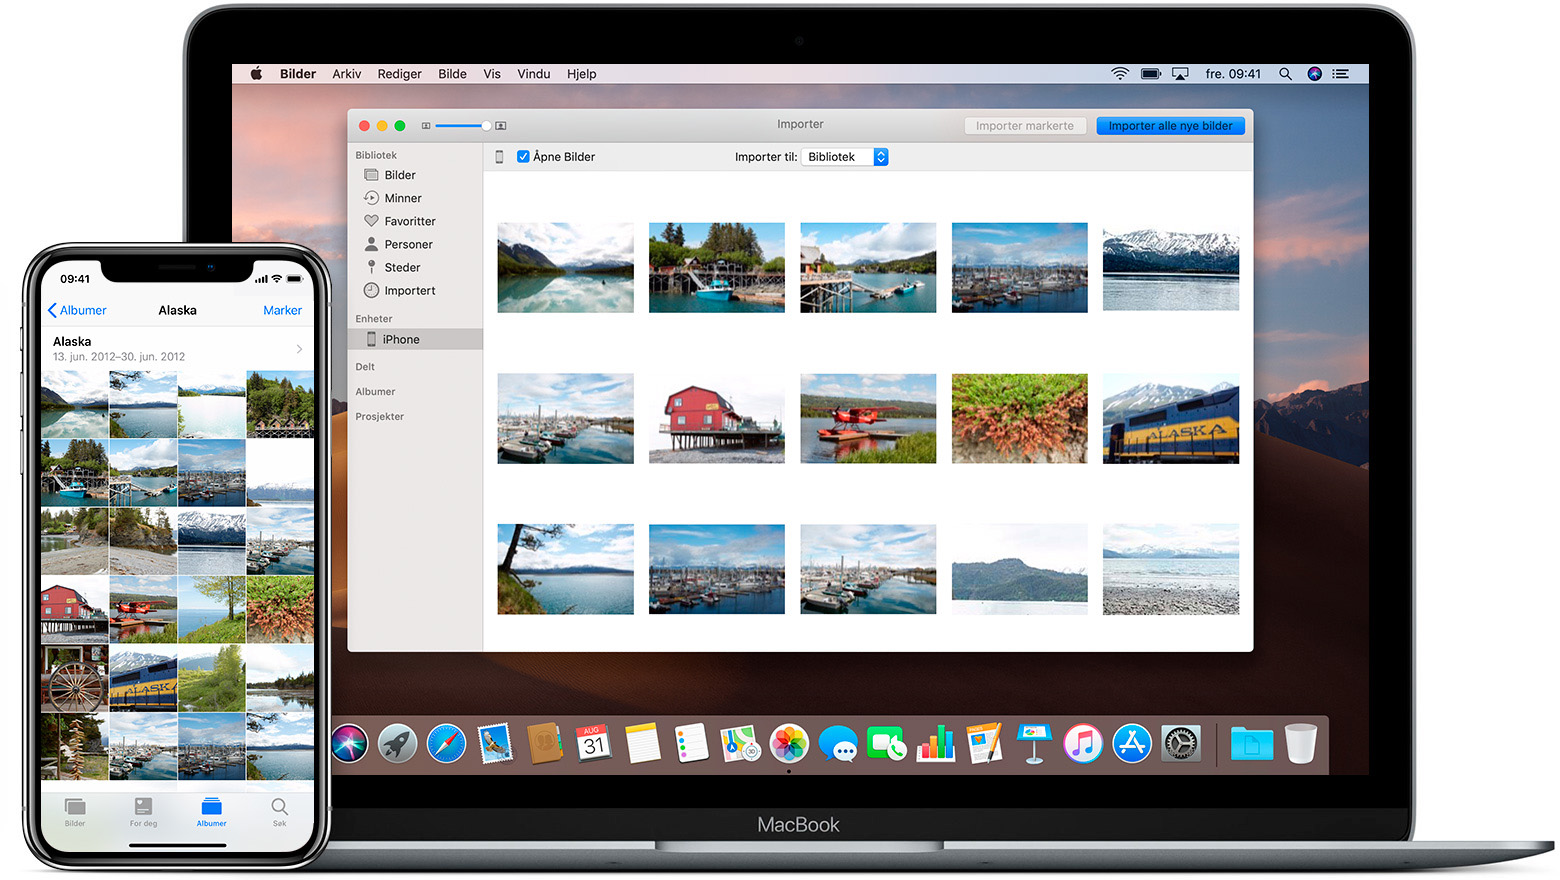 Bilder-appen på iPhone og Mac